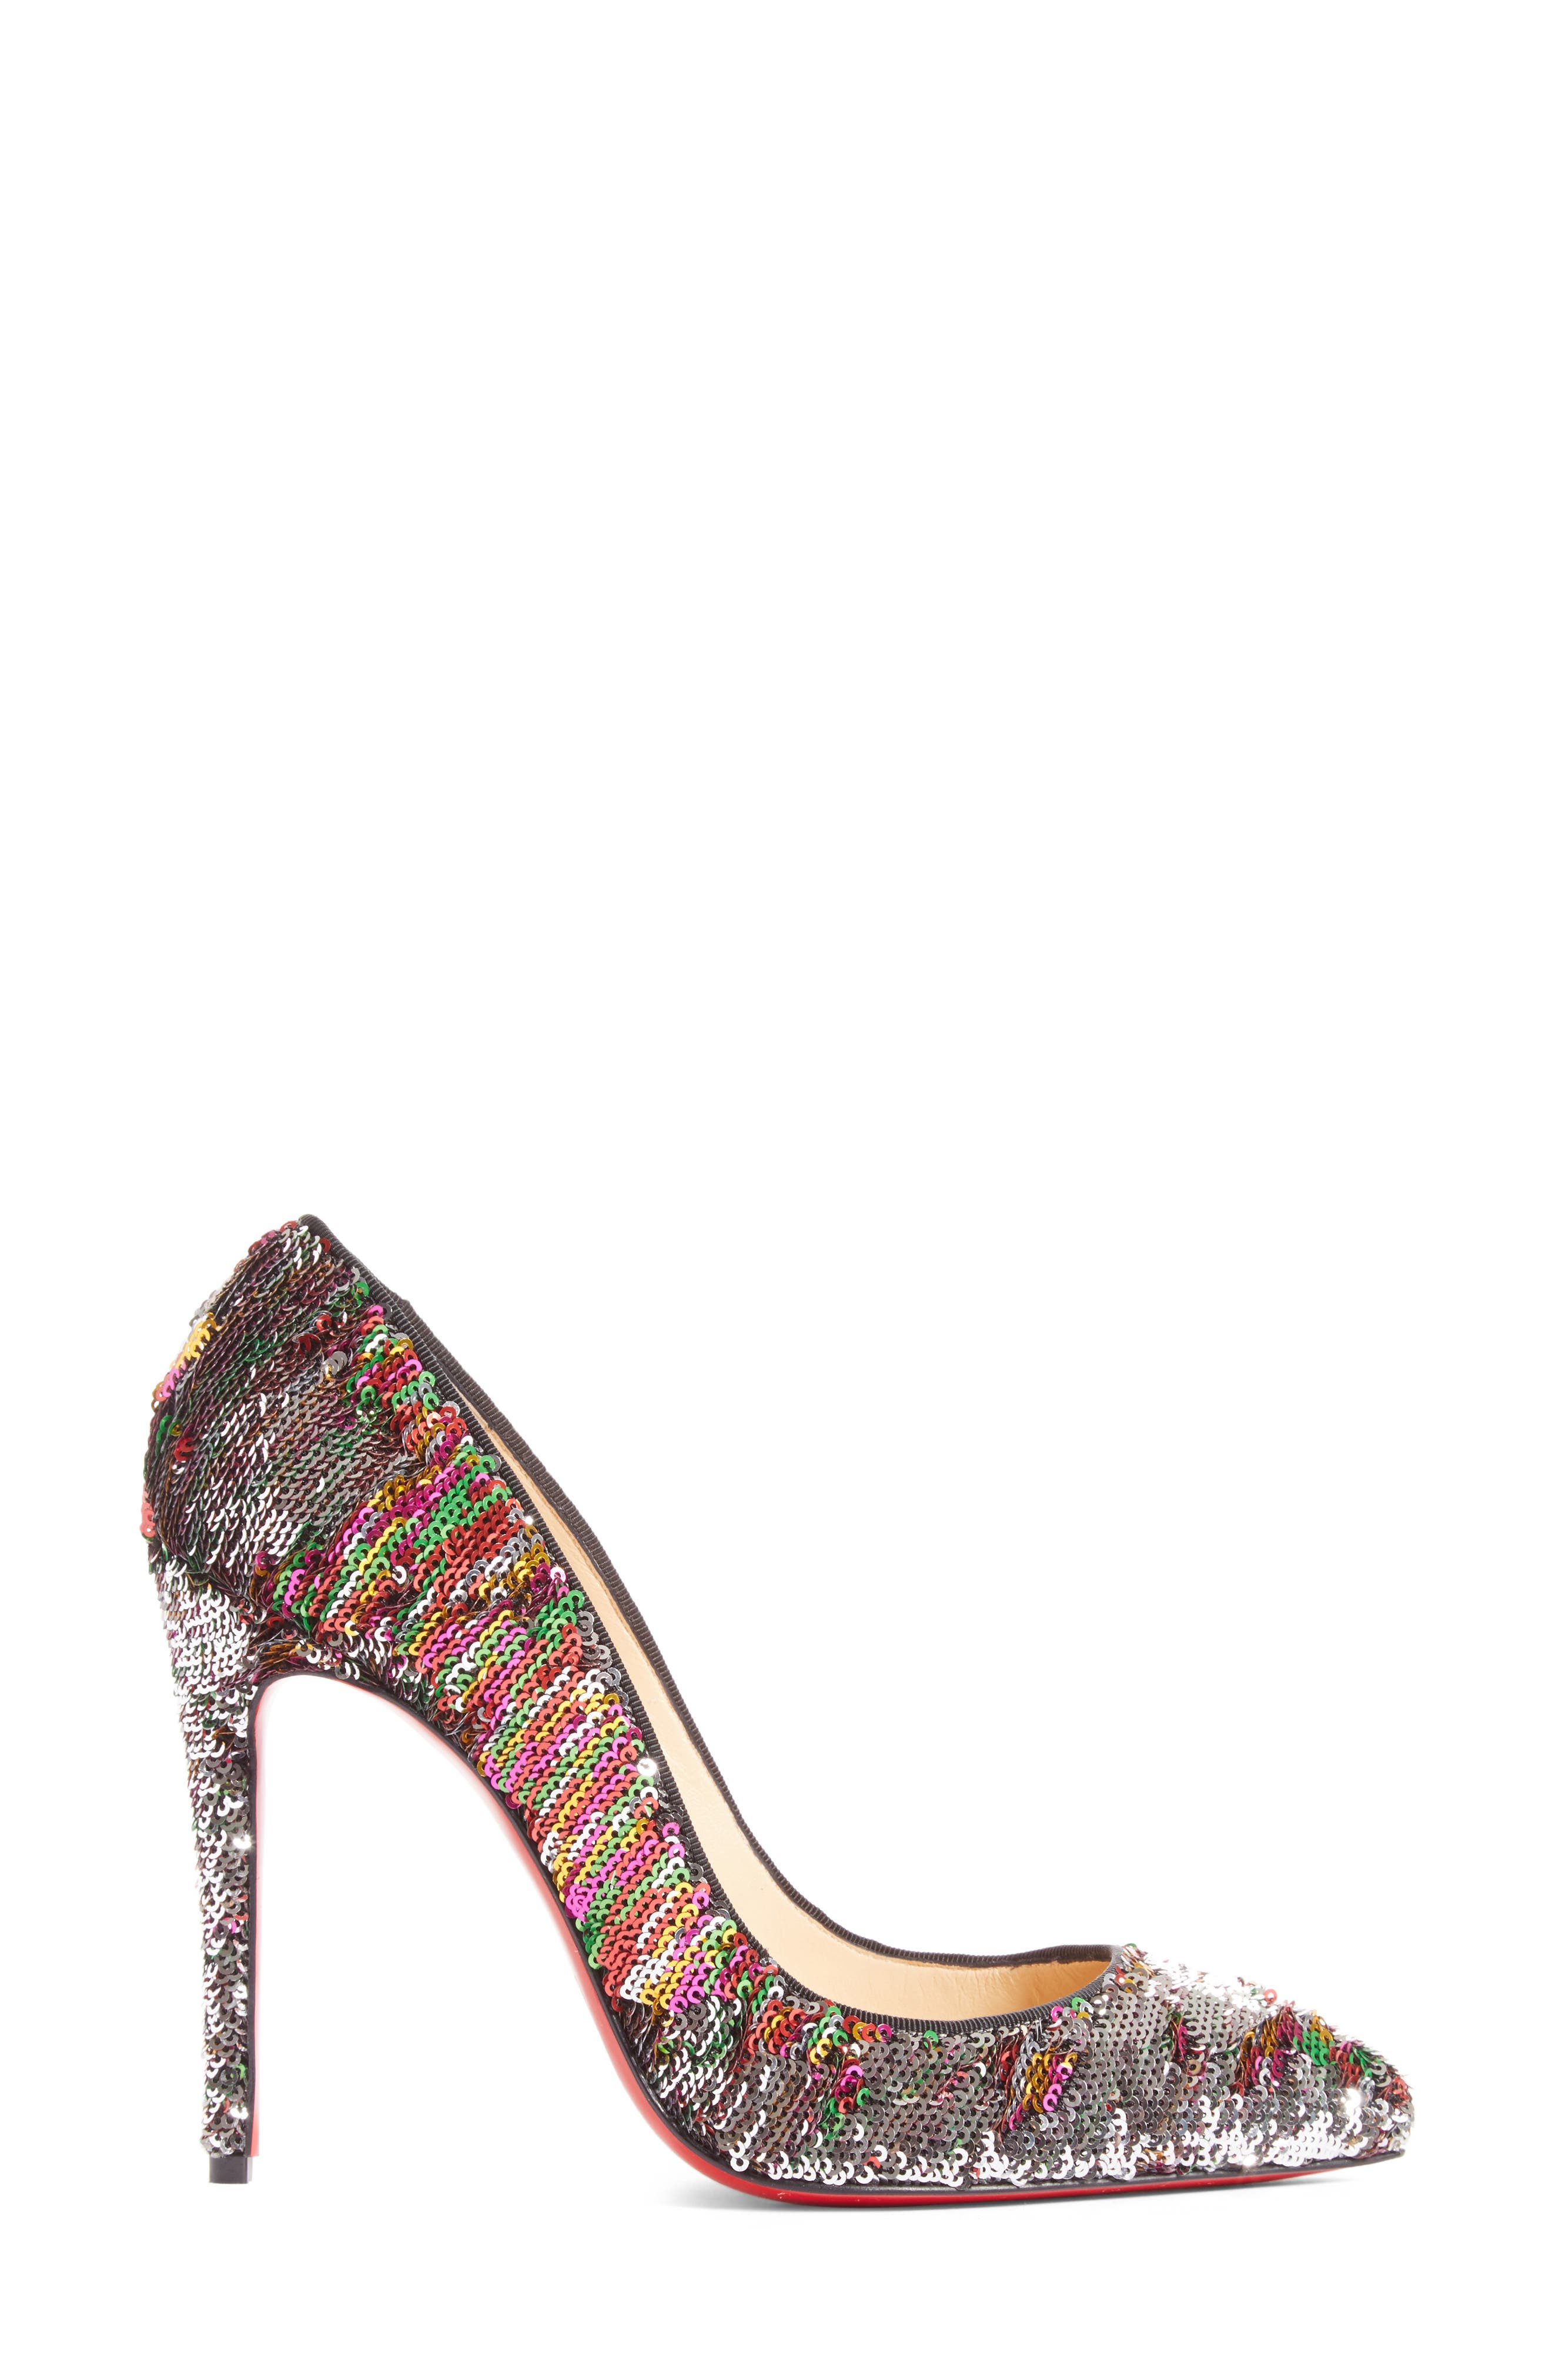 Pigalle Follies Sequin Pointy Toe Pump,                             Alternate thumbnail 3, color,